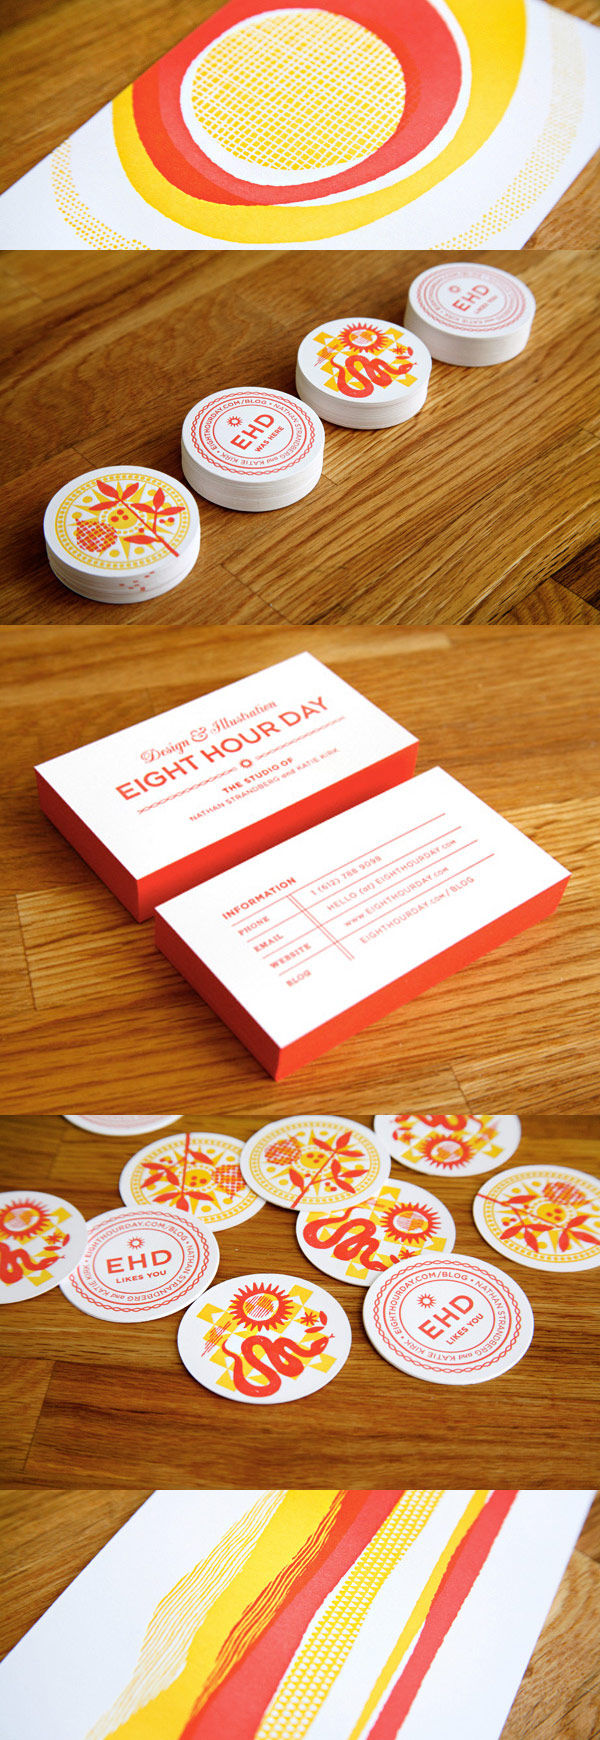 Eight Hour Day's Colorful Business Cards